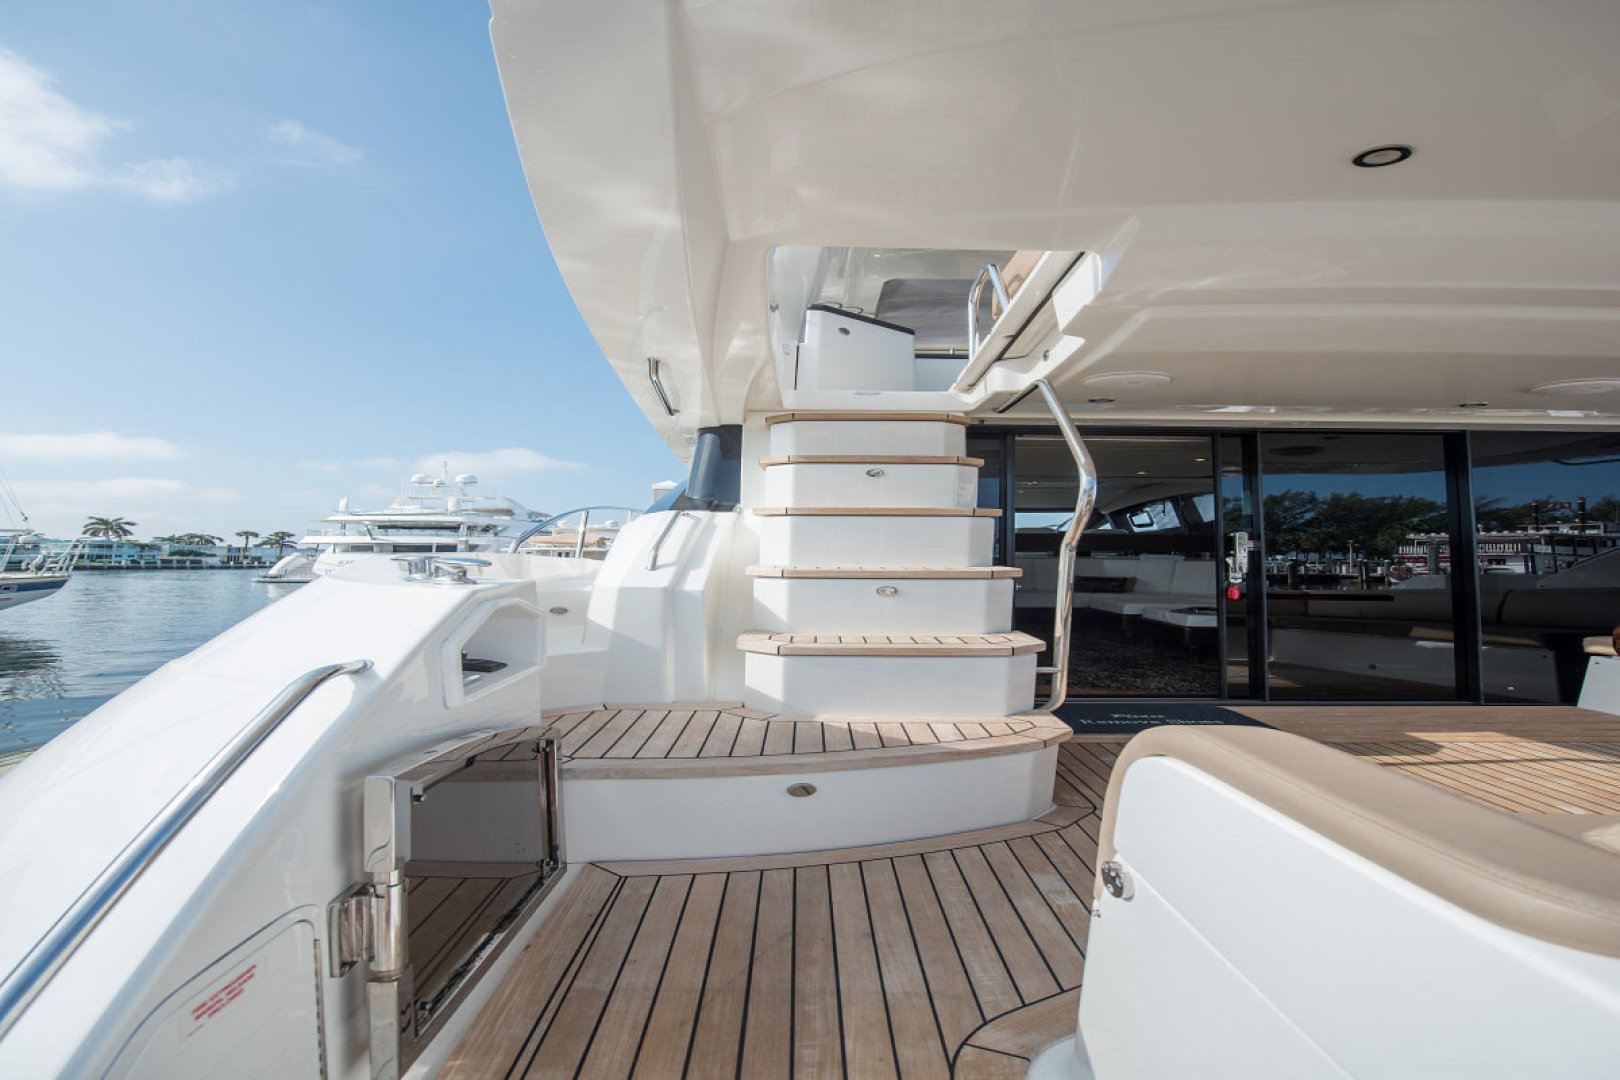 Sea Ray-L590 Fly 2016-2016 Sea Ray L590 Fly Ft. Lauderdale-Florida-United States-1284600 | Thumbnail